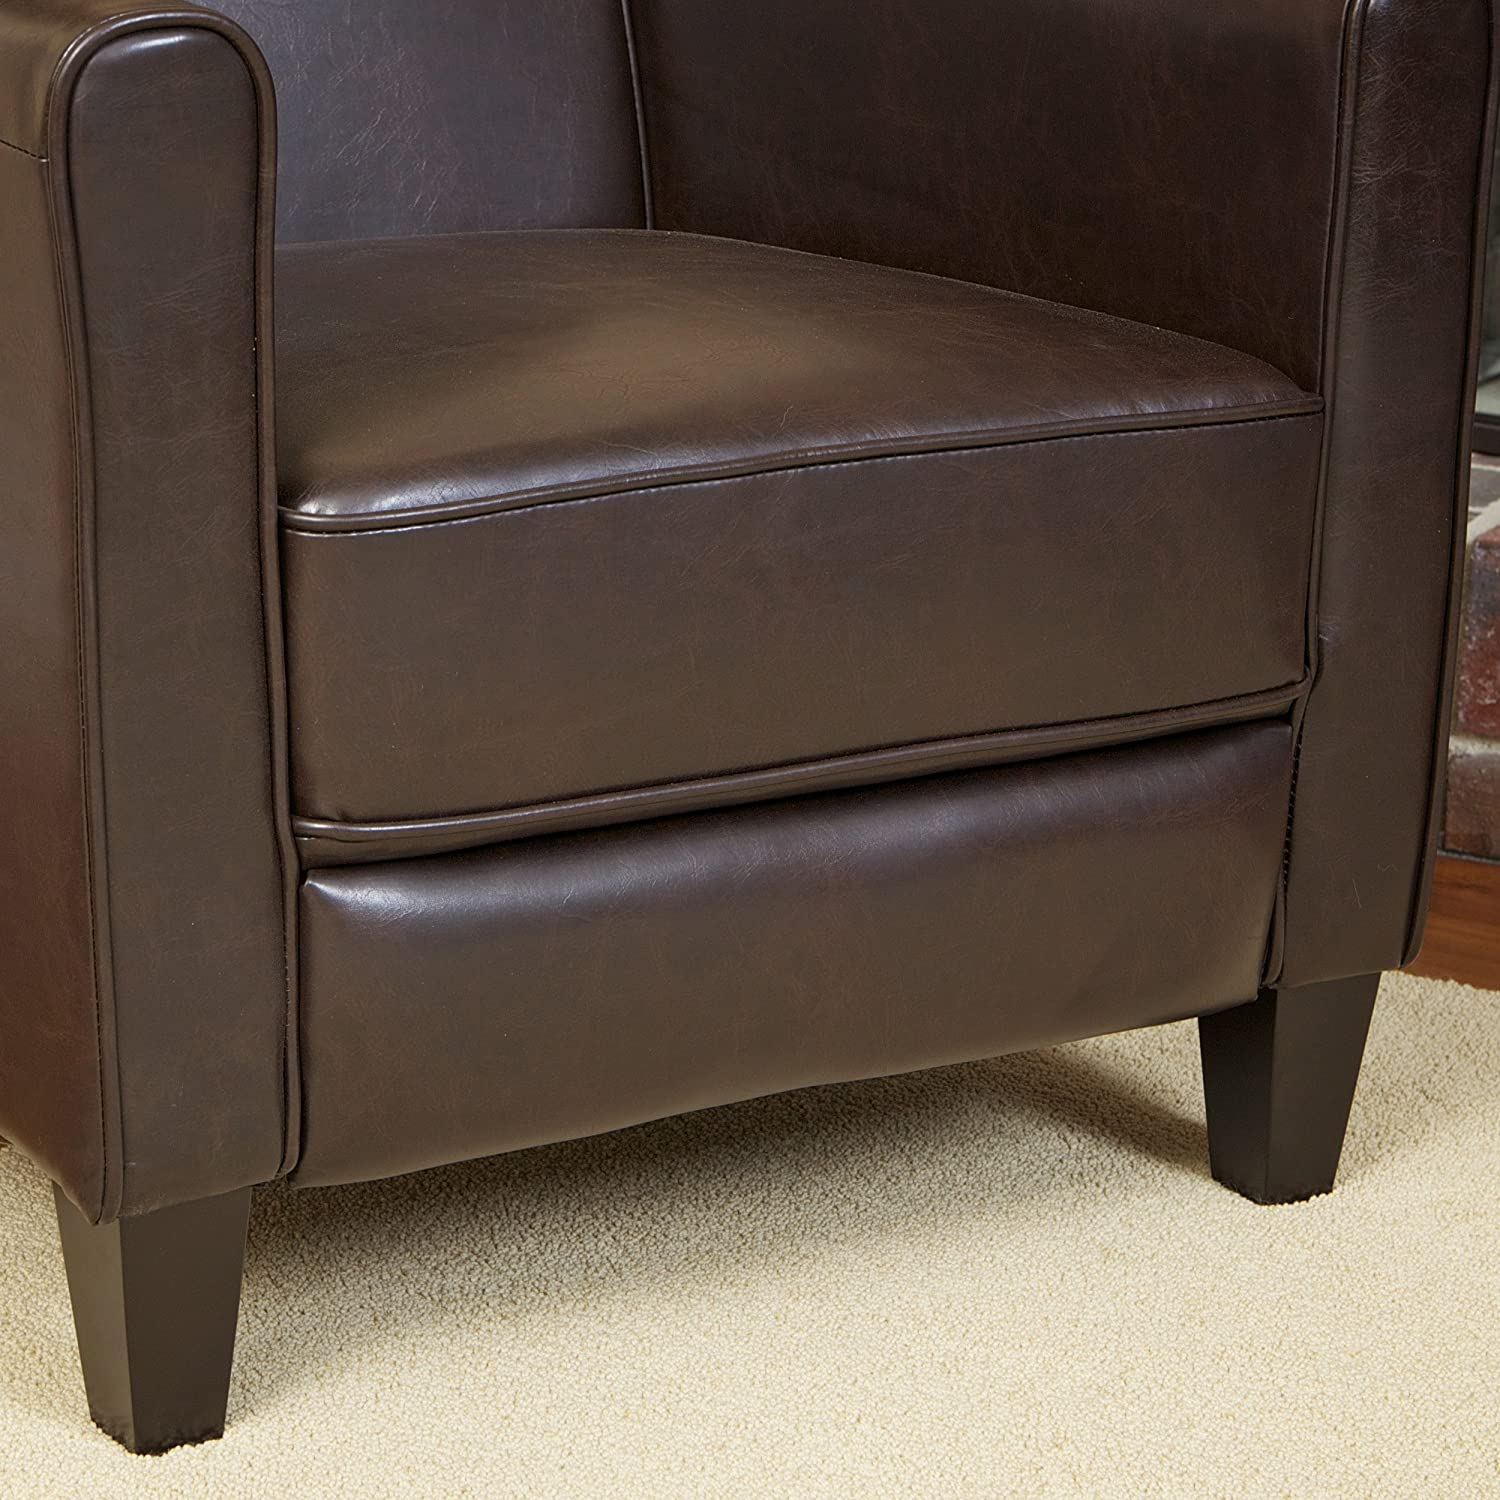 Lovely Amazon.com: Lucas Brown Leather Modern Sleek Recliner Club Chair: Kitchen U0026  Dining